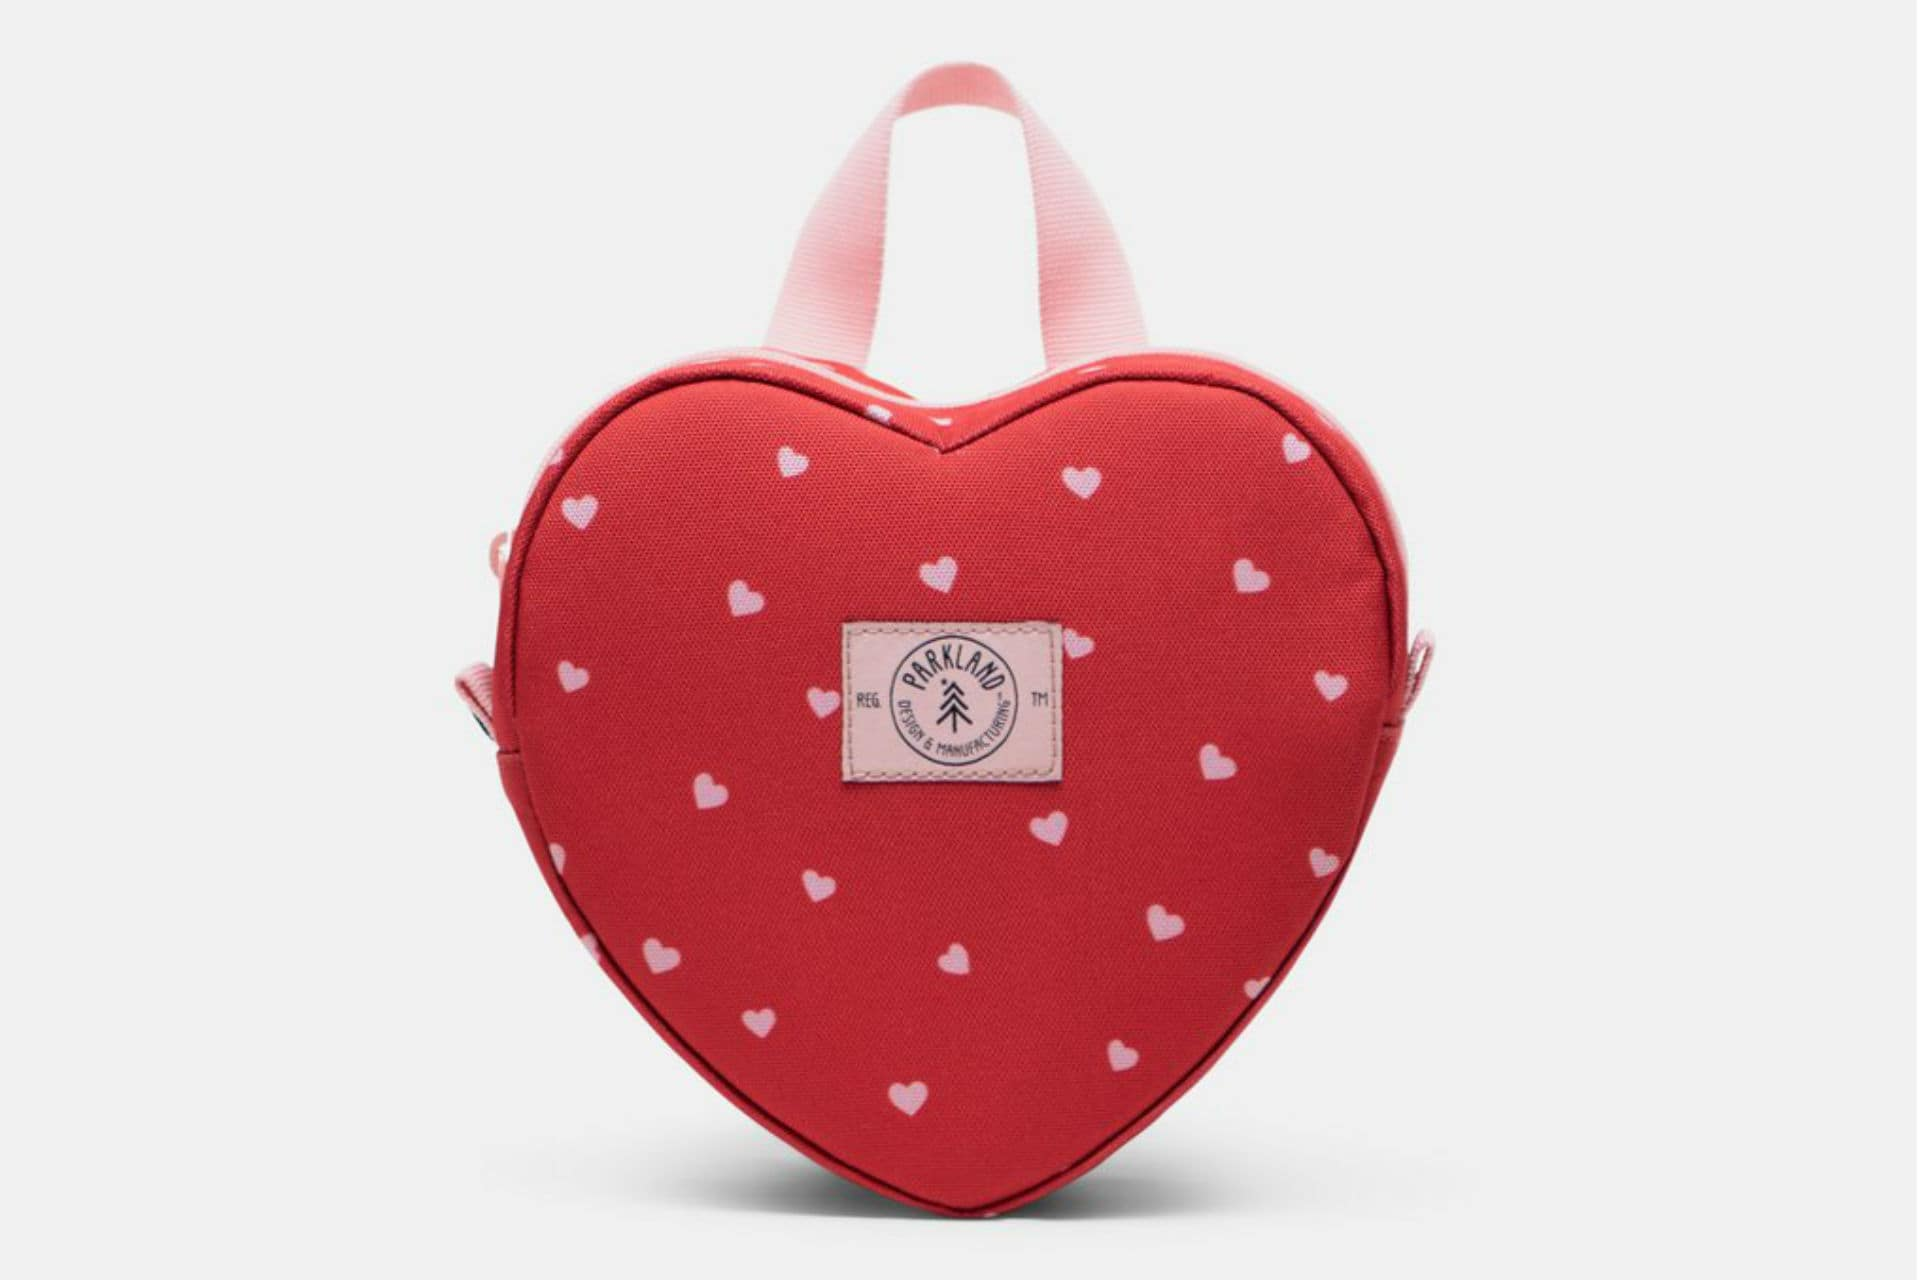 heart-shaped lunch bag